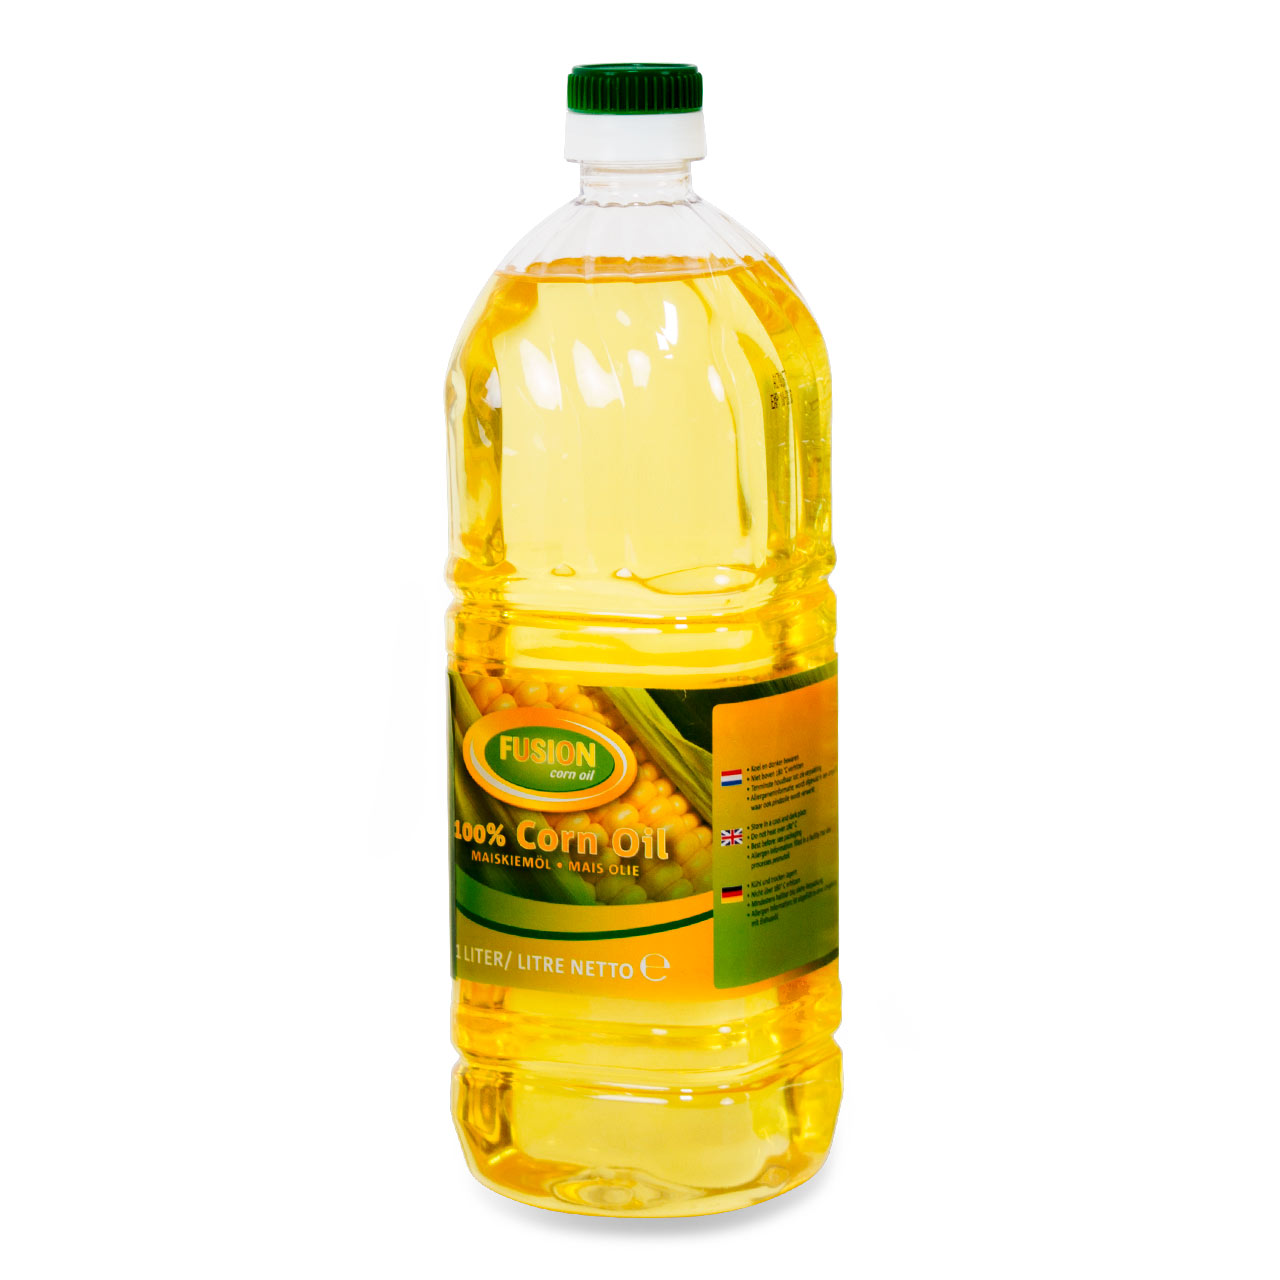 HFI Filling - The Personal Touch in edible oil